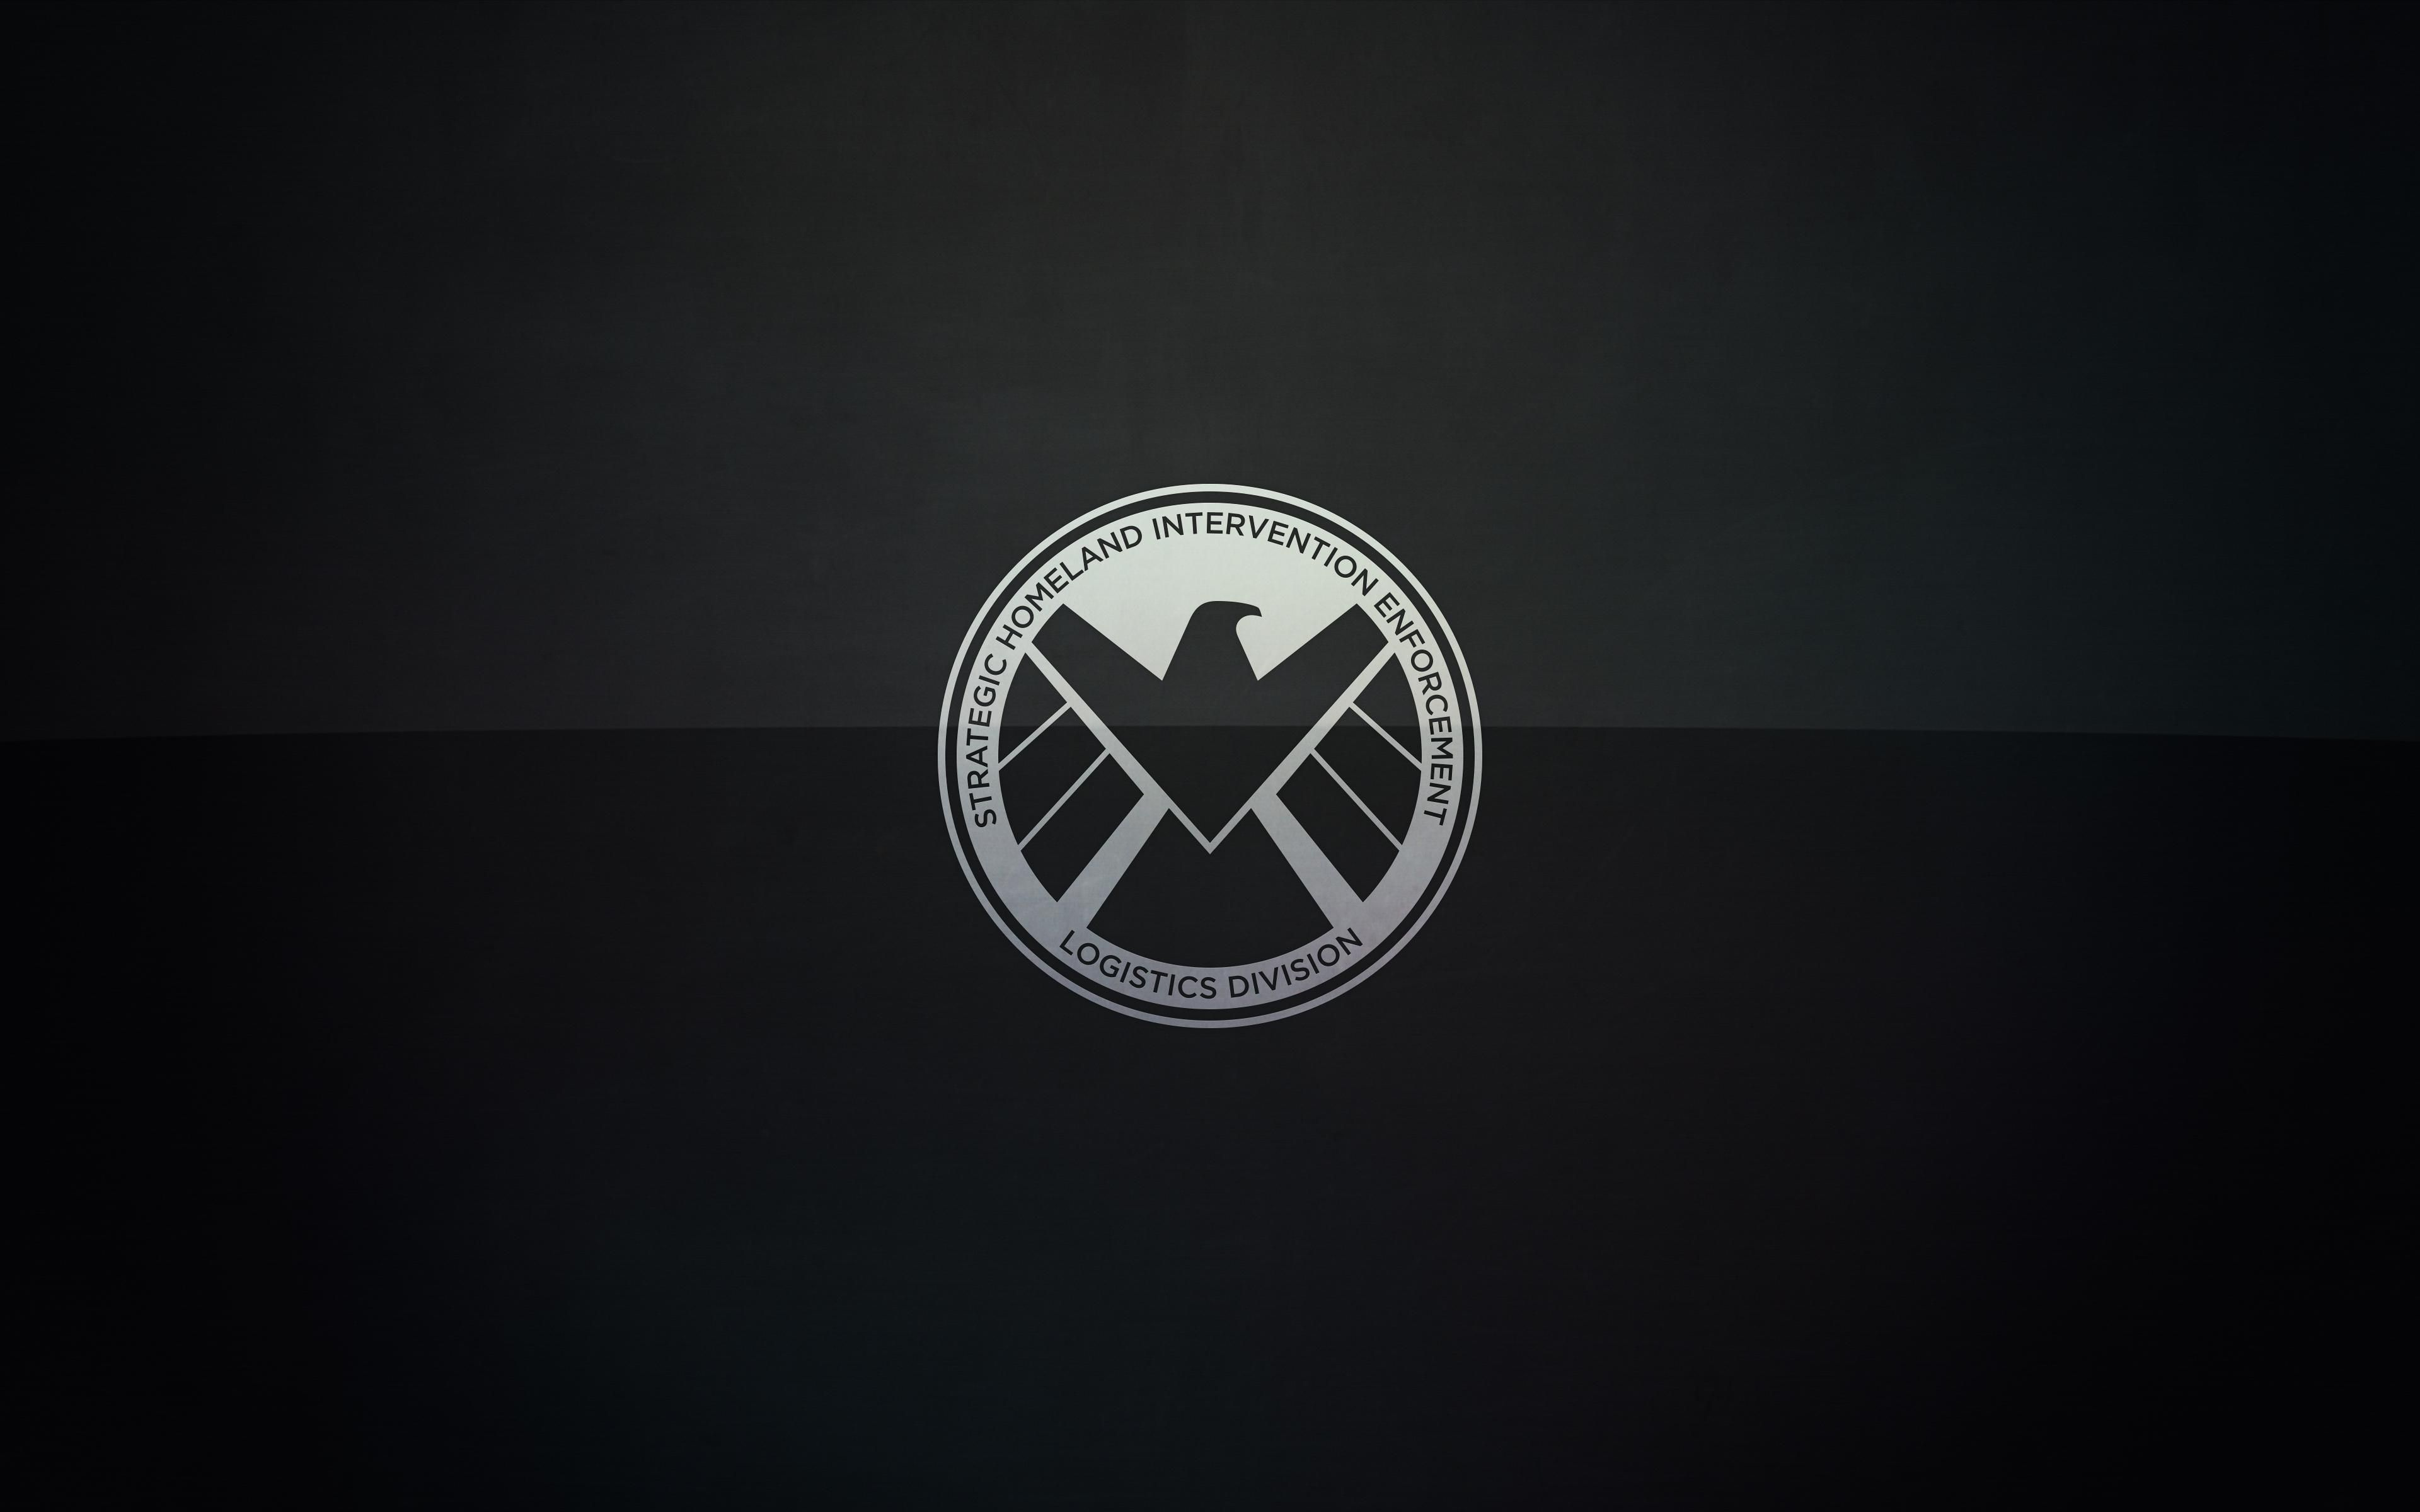 marvel's agents of s.h.i.e.l.d. logo wallpaper wide or hd | tv